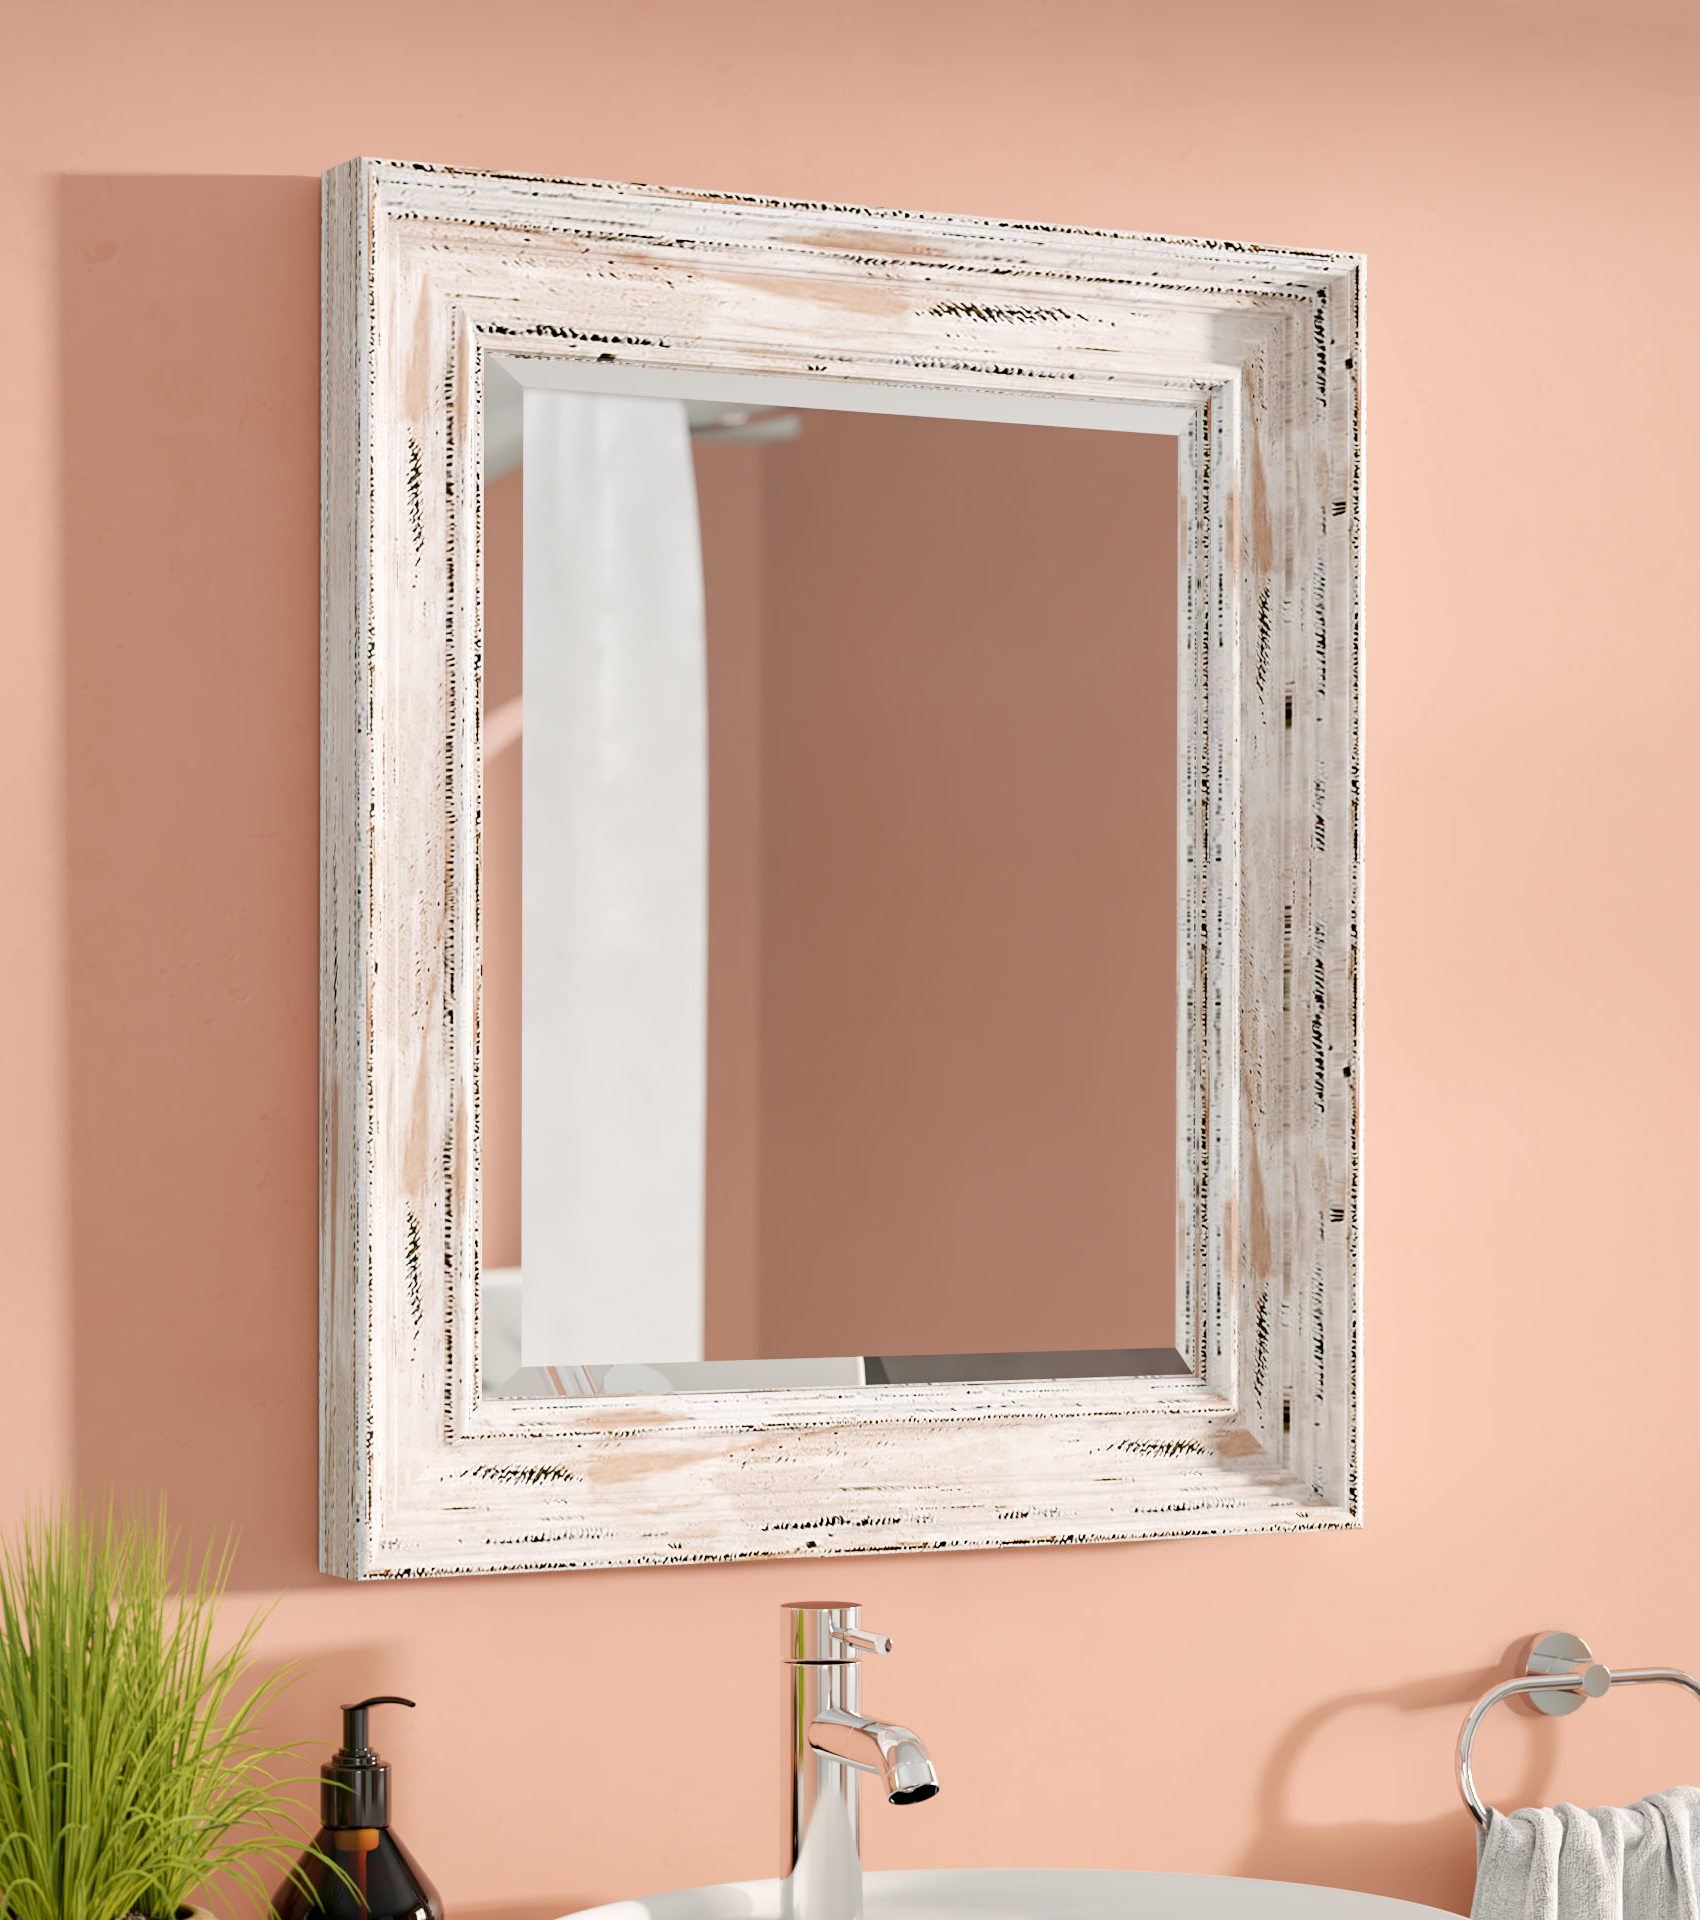 Latest Marion Wall Mirrors Regarding Marion Beveled Distressed Bathroom Wall Mirror (Gallery 7 of 20)